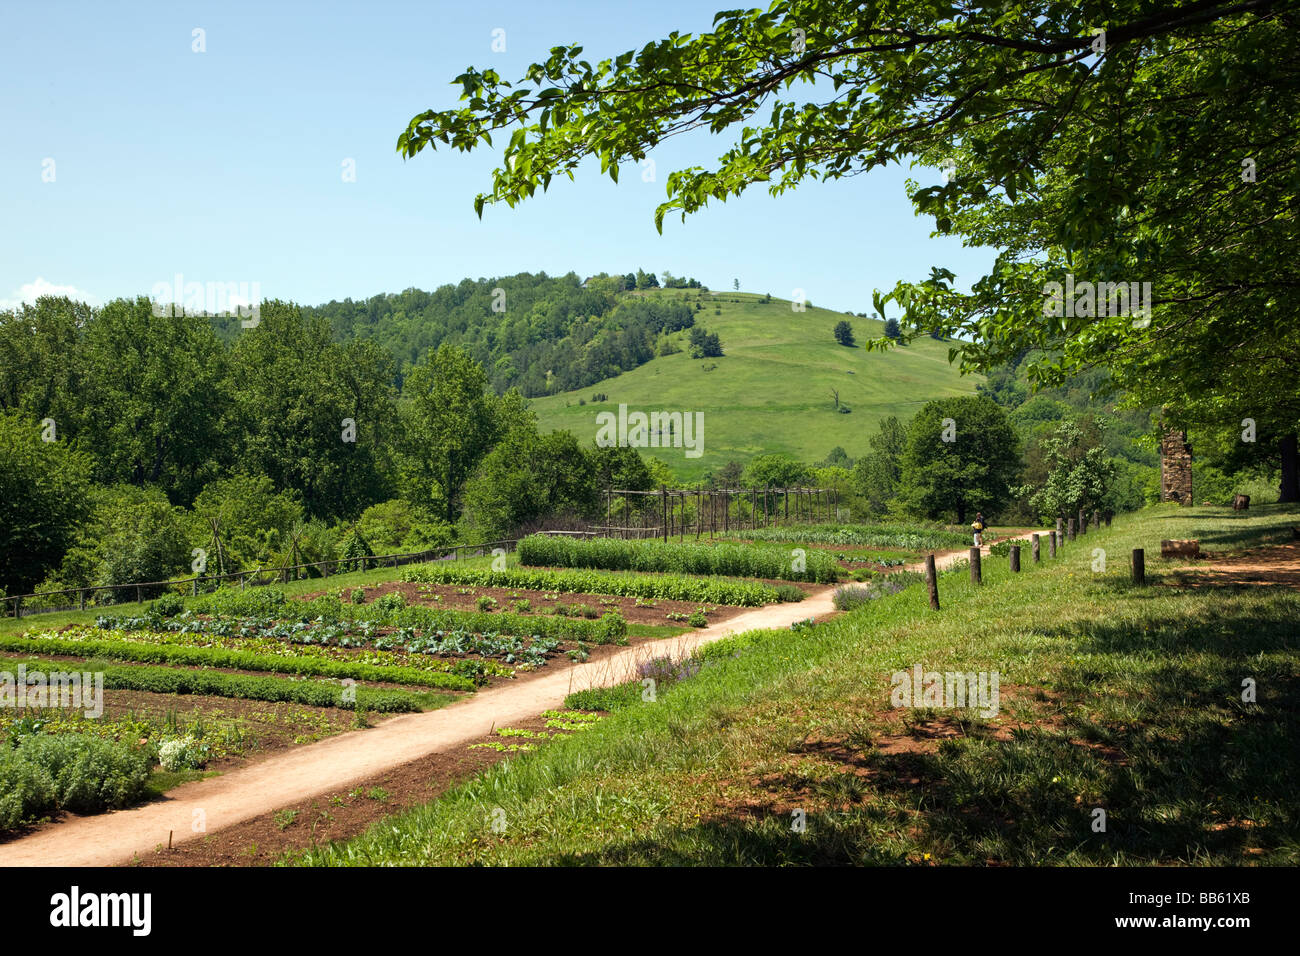 The Vegetable And Flower Gardens At Monticello Thomas Jefferson S Former  Home And Plantation Near Charlottesville